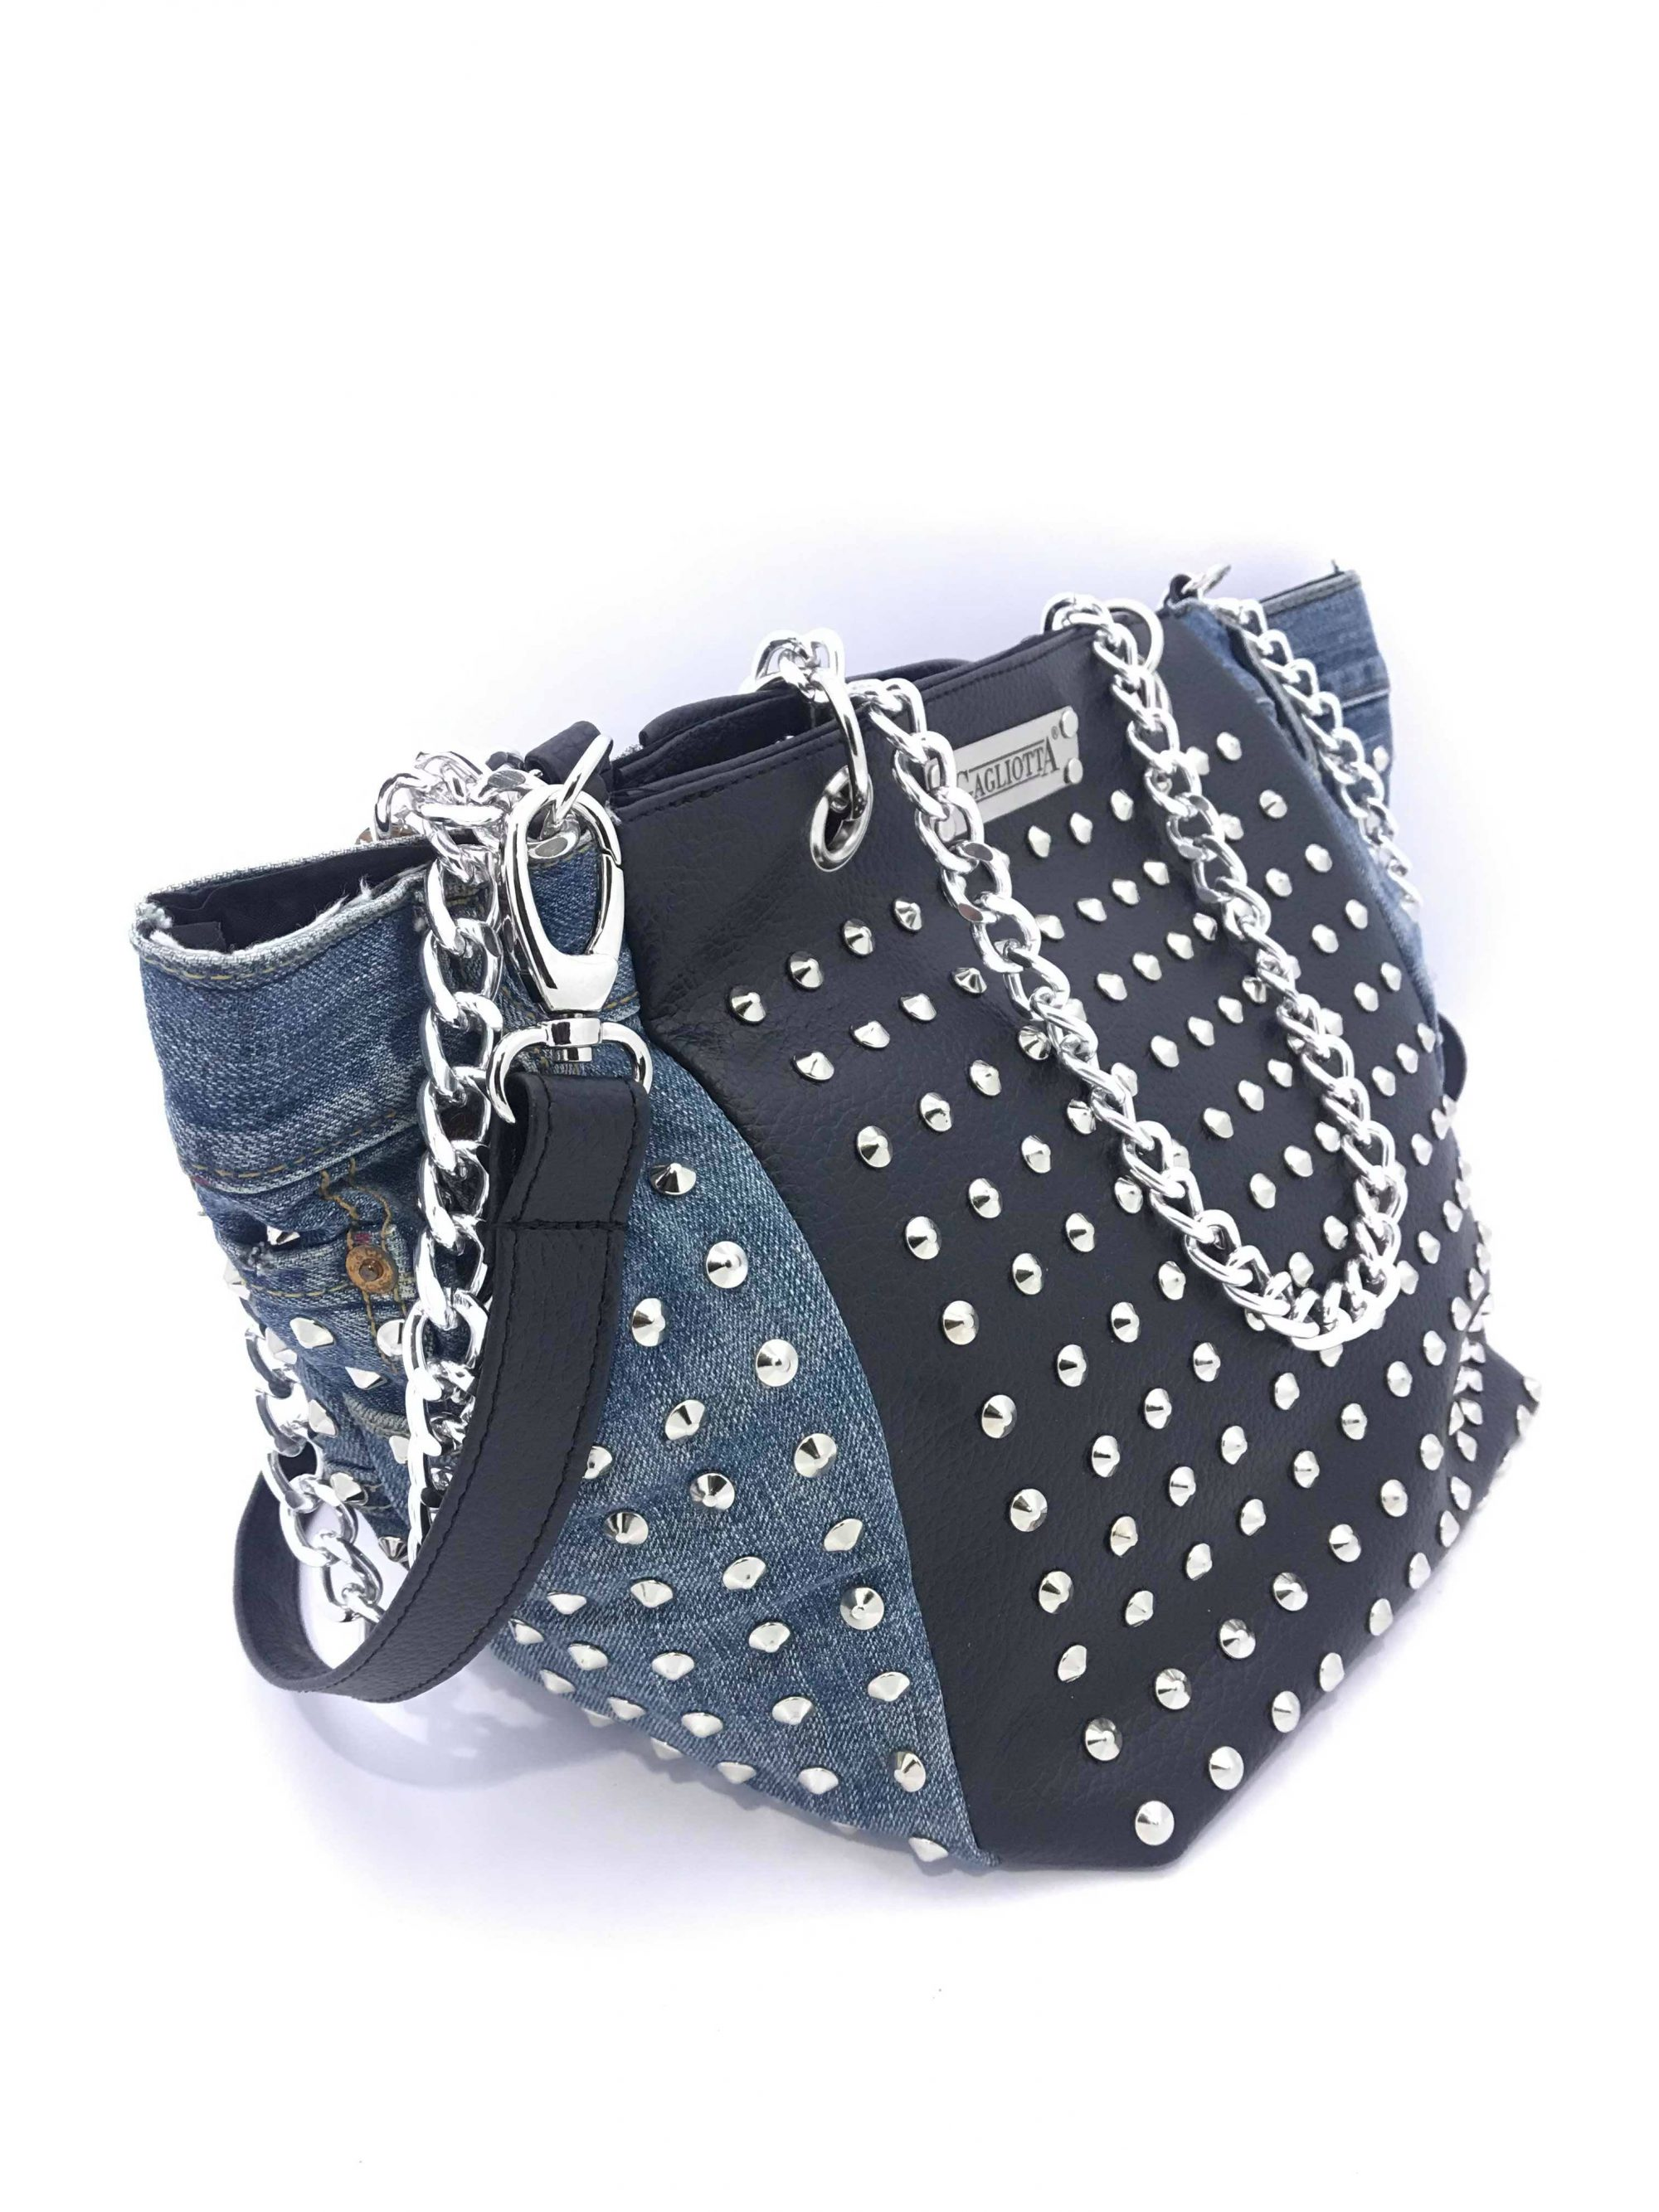 GAGLIOTTA BAG TOTAL STUDS NERO MANICO CATENA